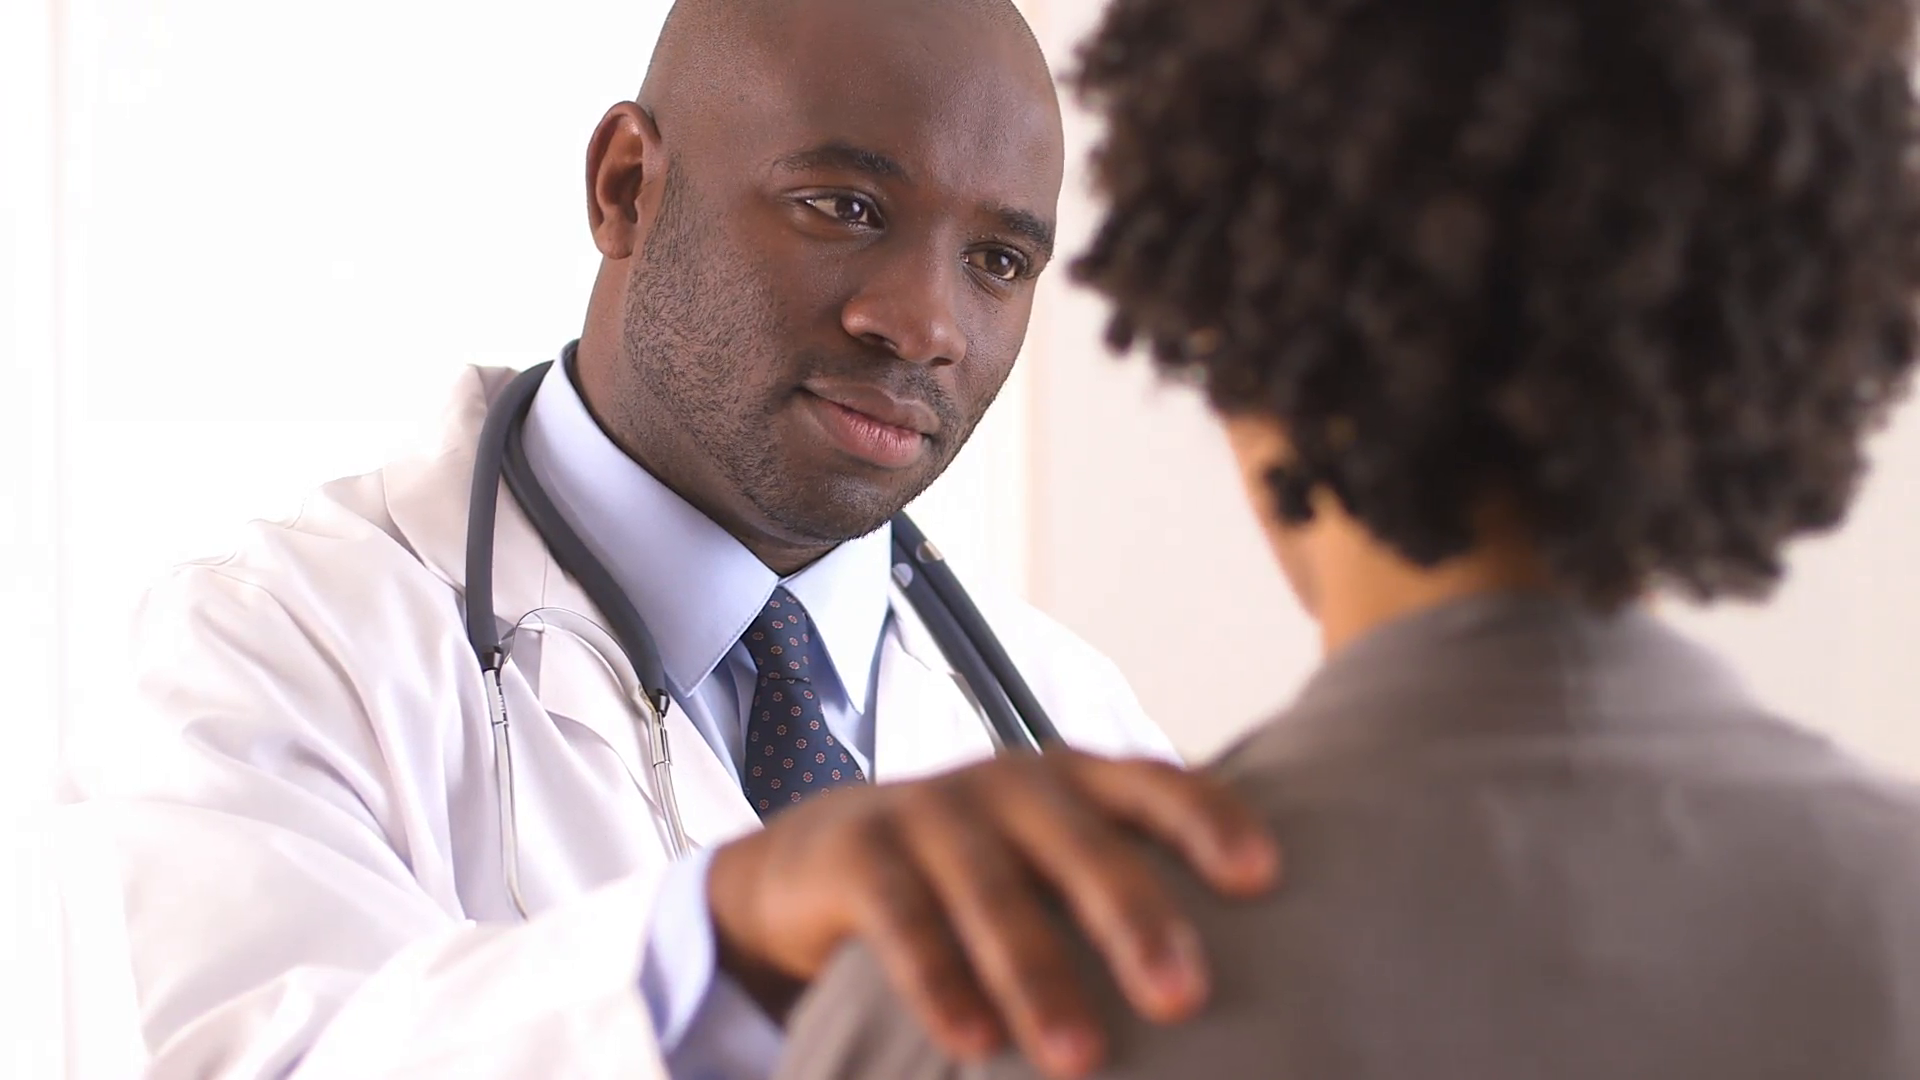 Dick chaneytures pictures of black doctor